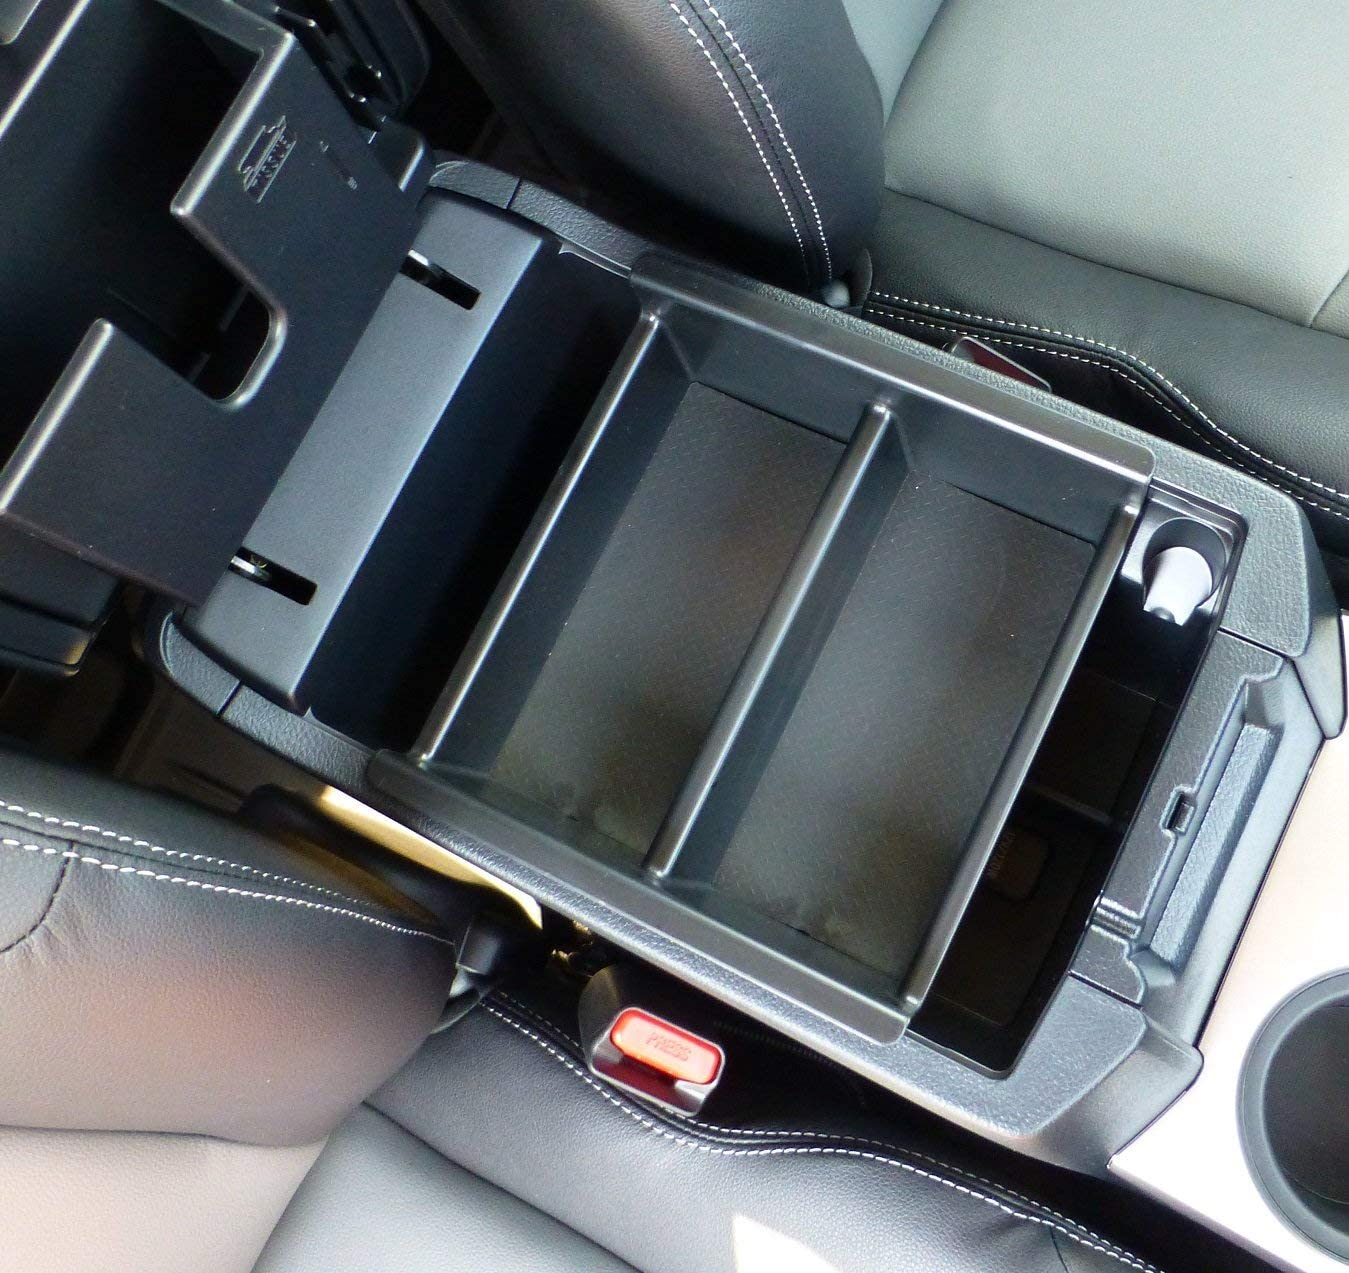 Tray Center Console Divider - Made in USA and Glove Box Organizer Compatible with Toyota 4Runner Vehicle OCD 2010-2021